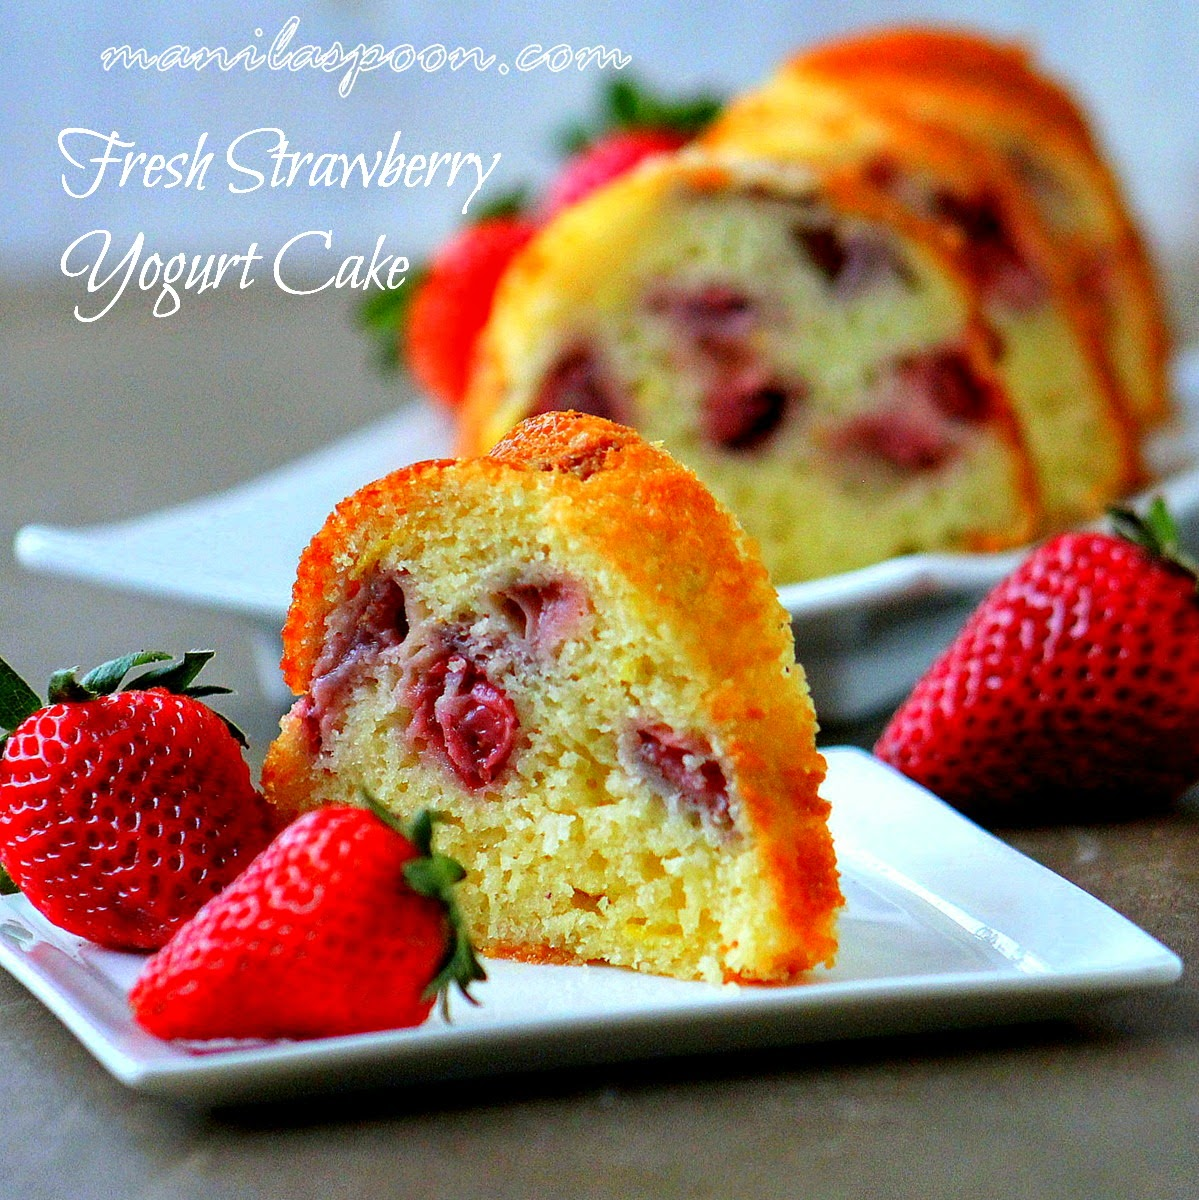 Manila Spoon: Fresh Strawberry Yogurt Cake